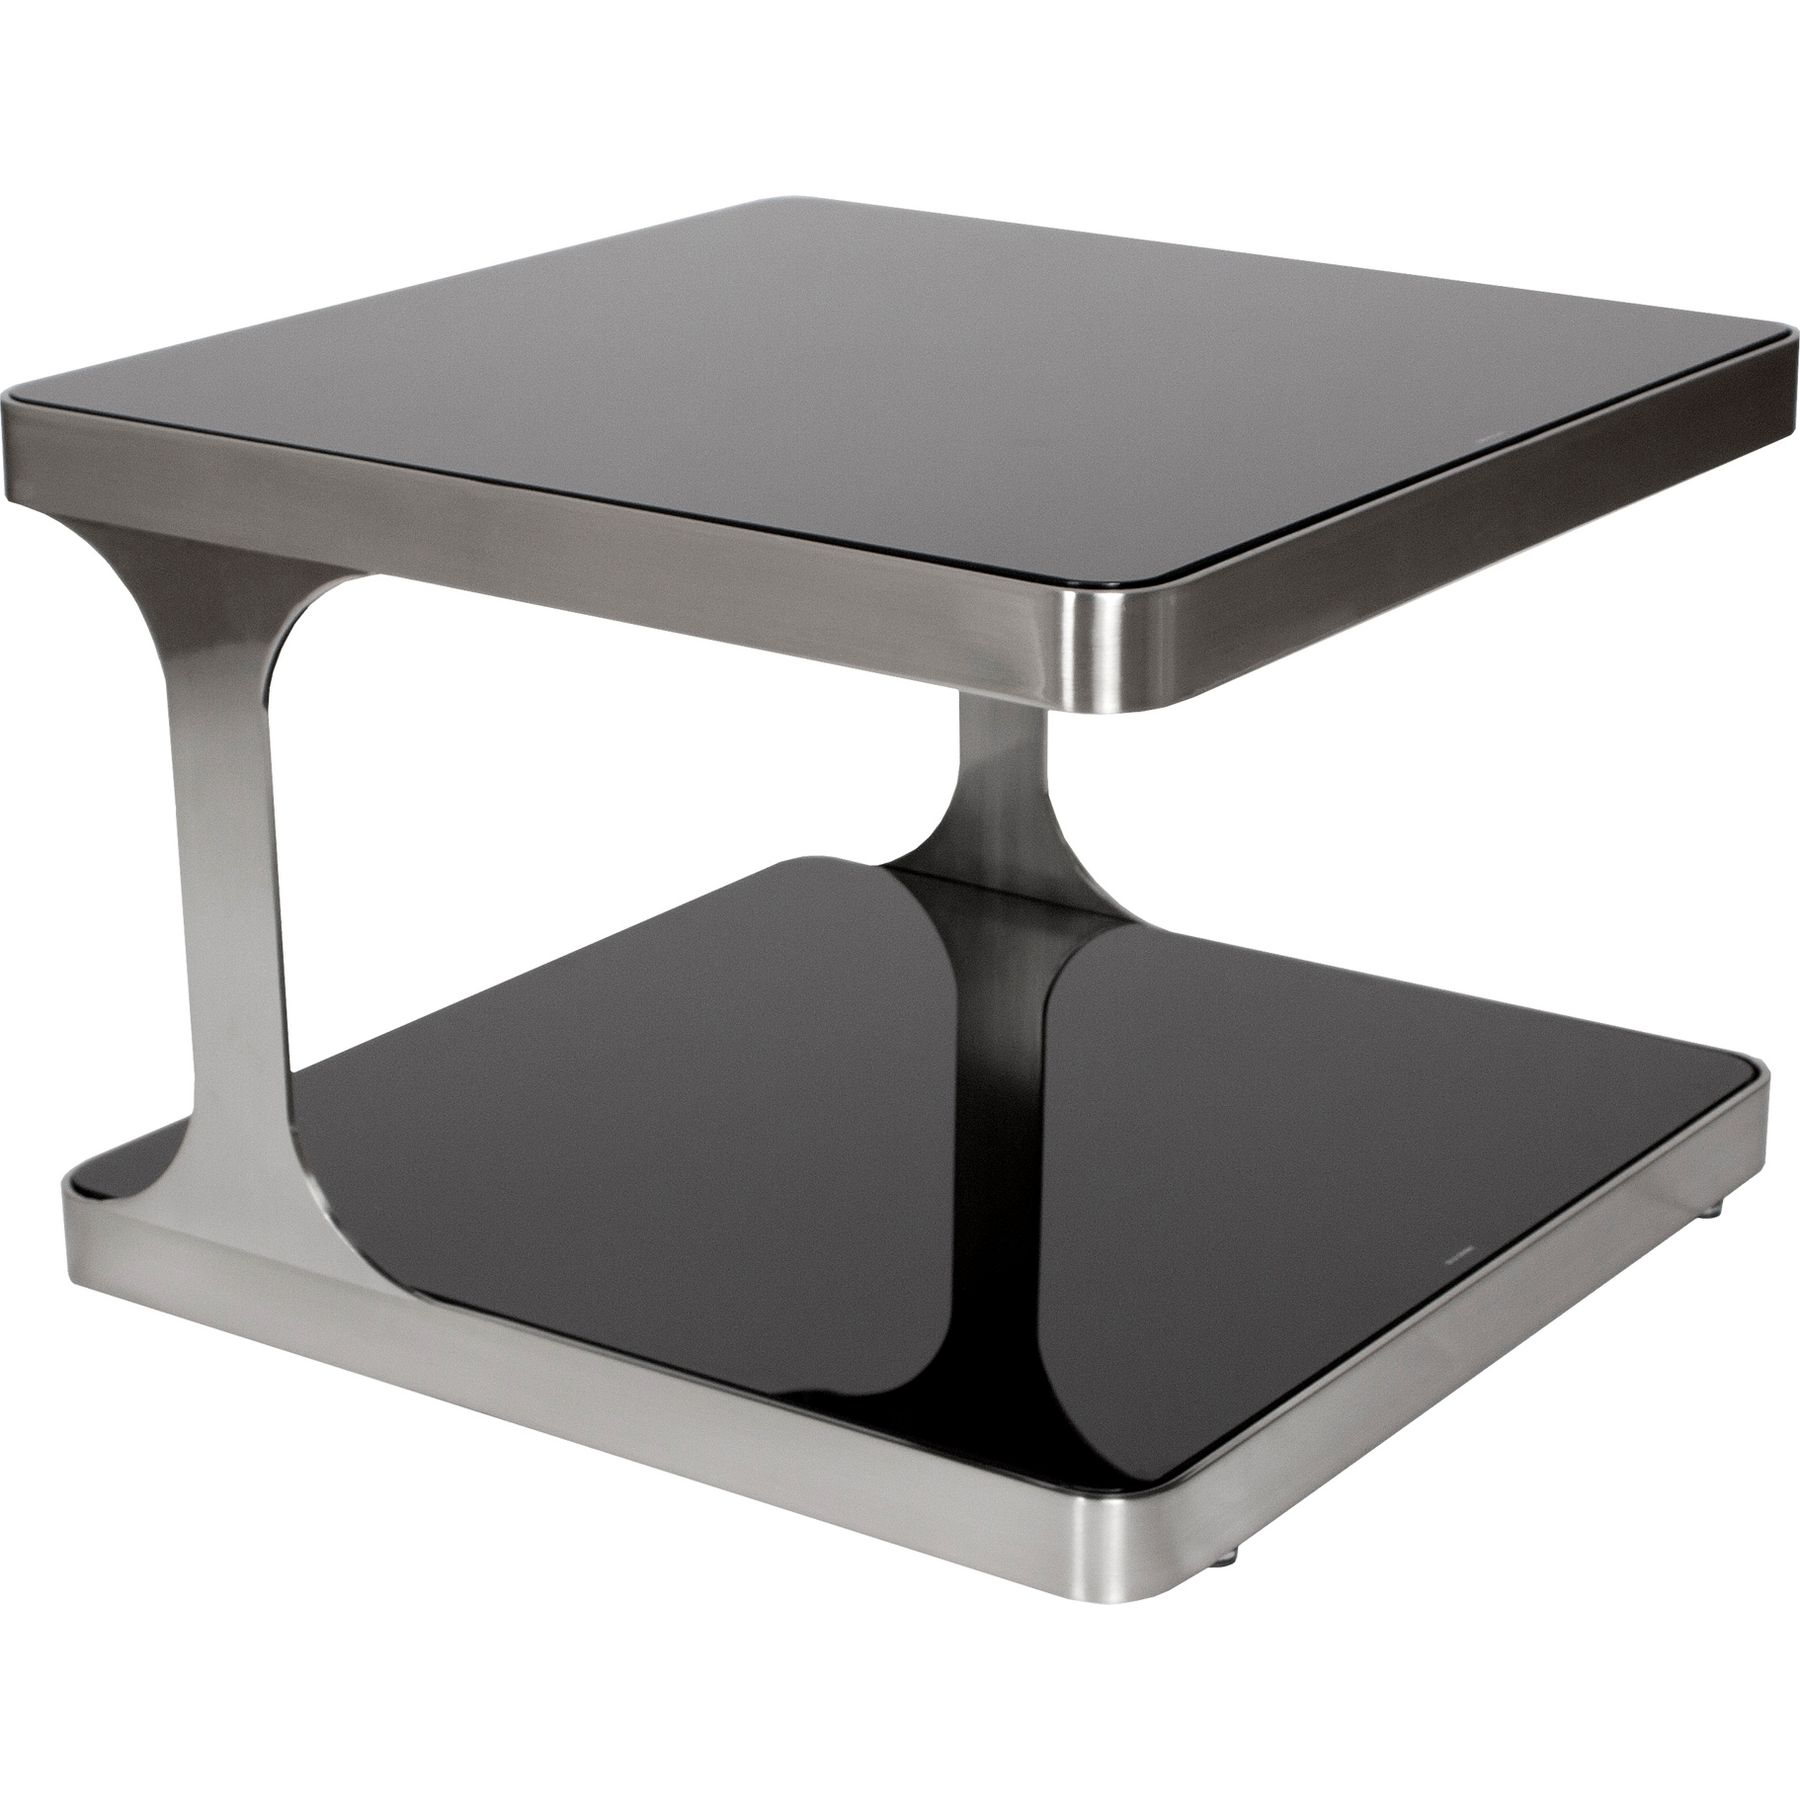 allan copley designs diego square end table black glass top tables shelf brushed stainless steel dark wood accent whalen brown dining set hunter furniture modern orange small